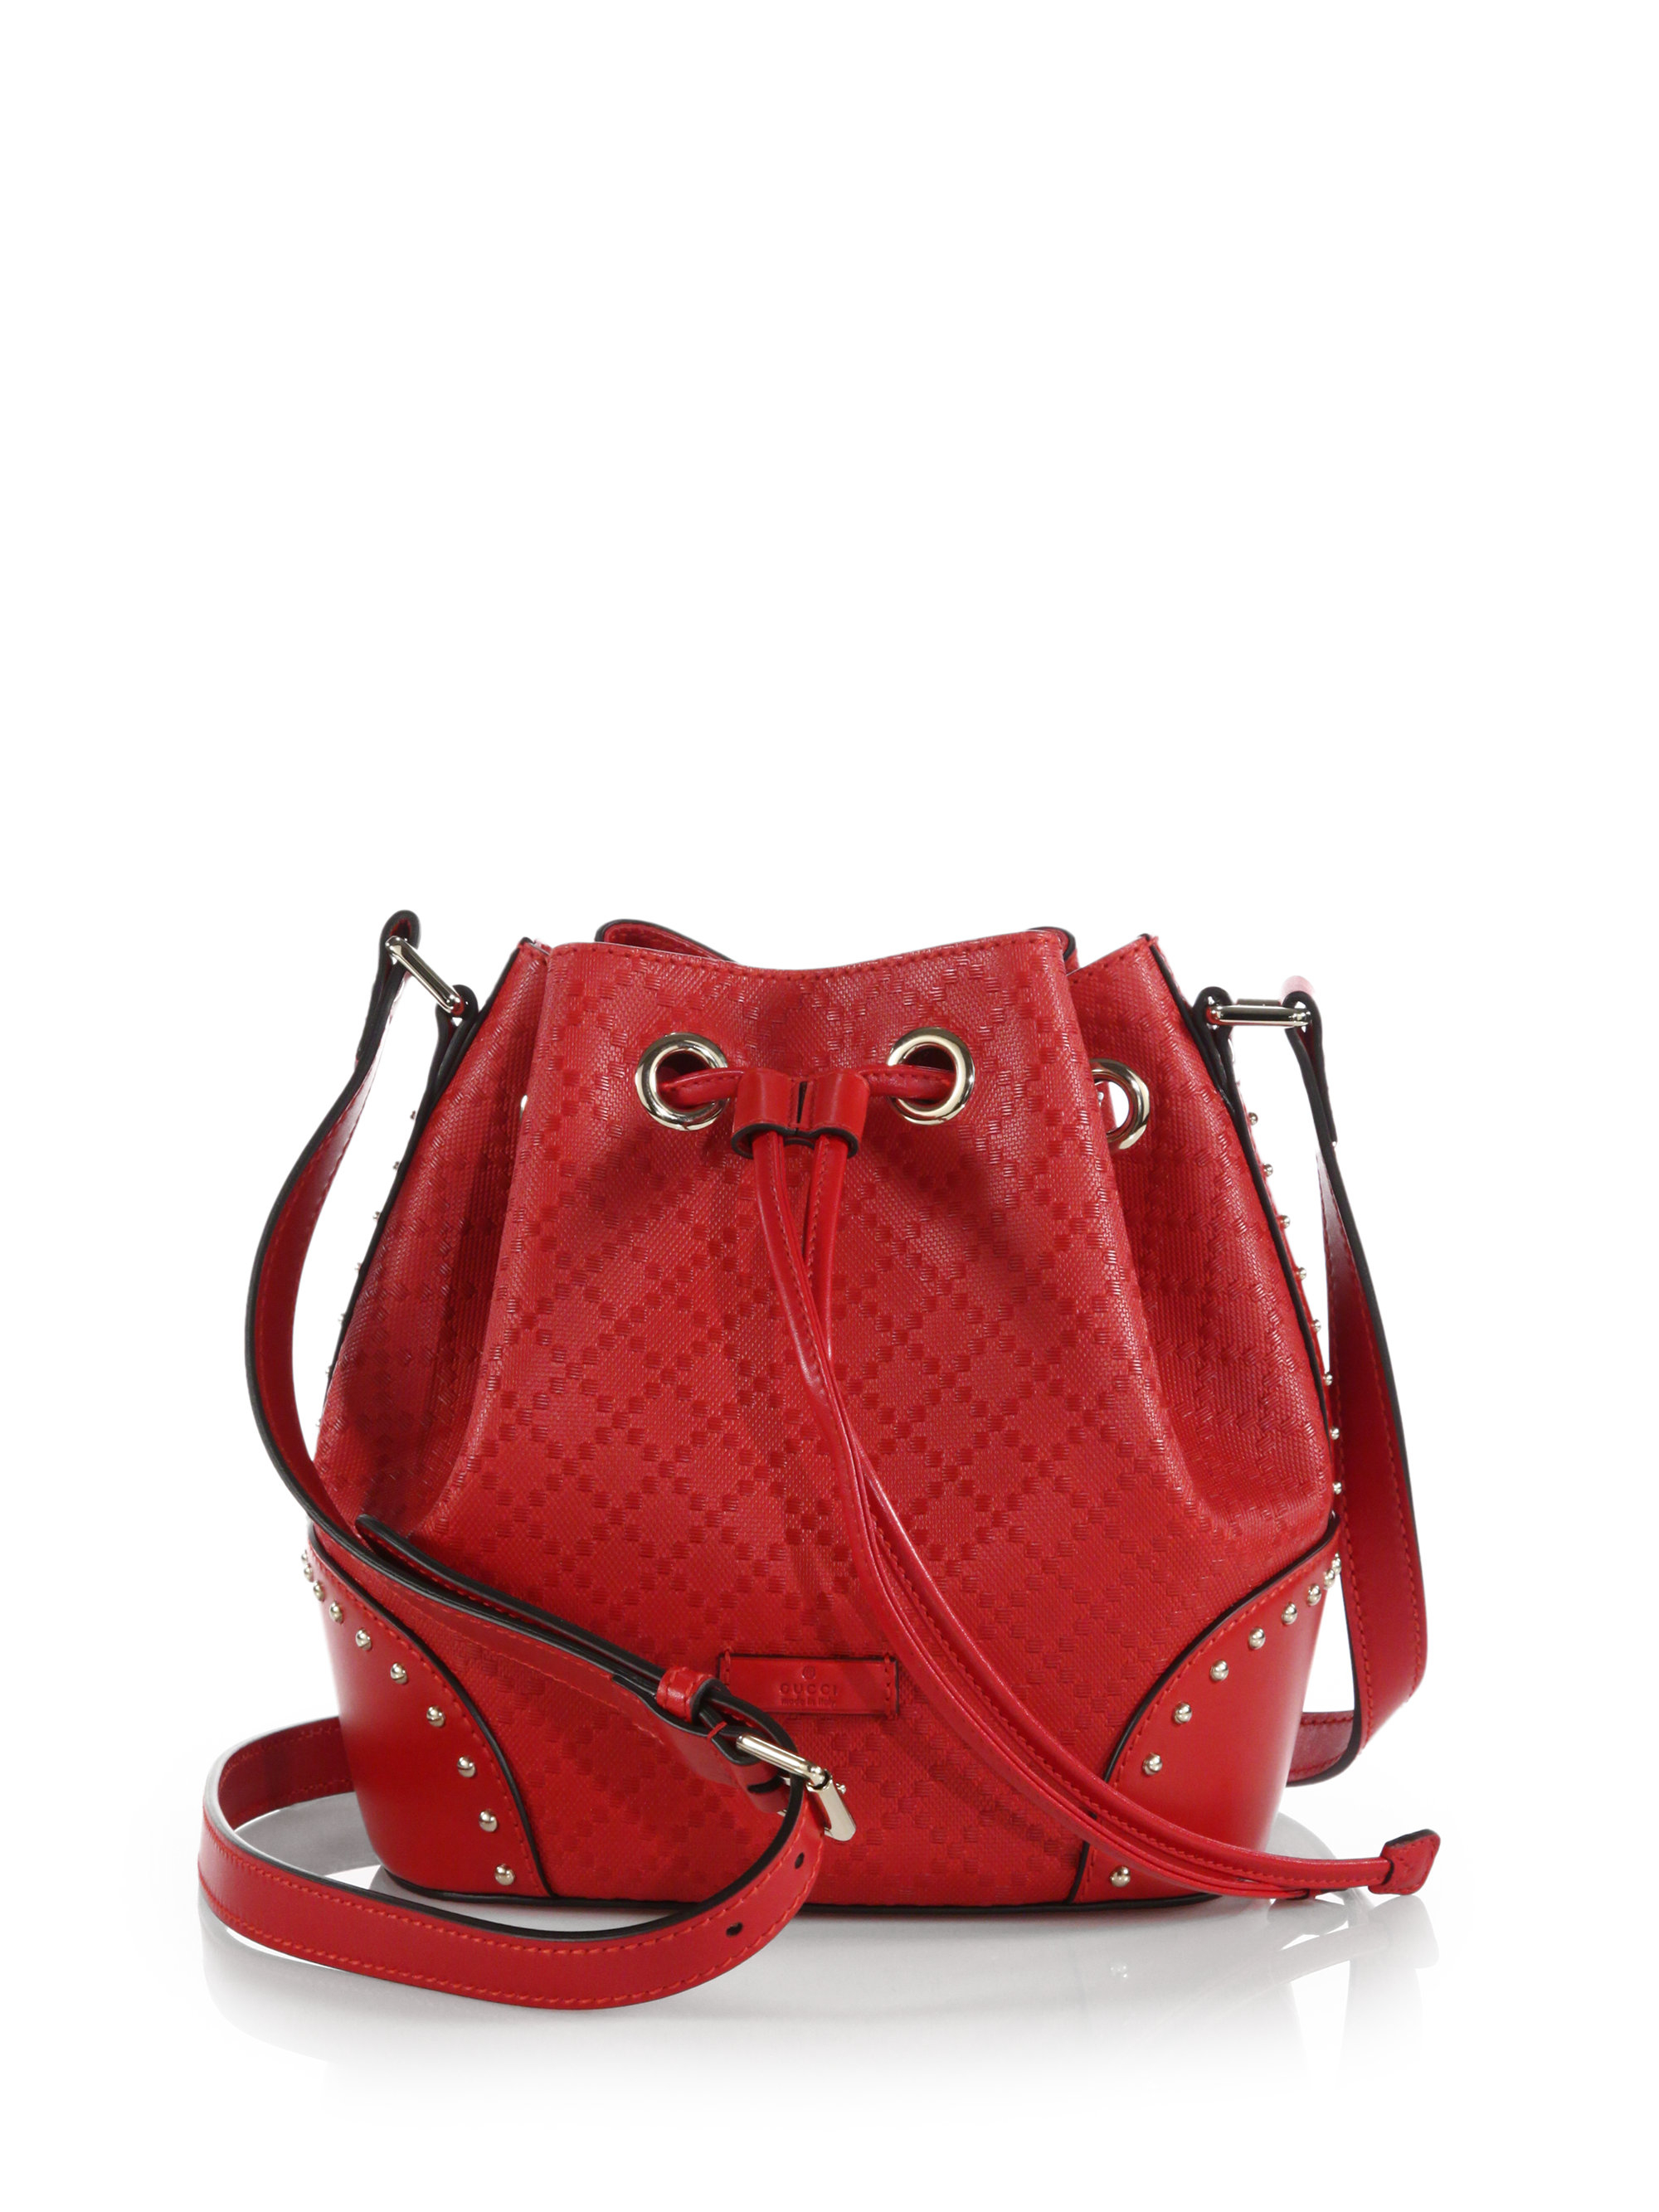 005dd3c443aa94 Gucci Bright Diamante Leather Bucket Bag in Red - Lyst